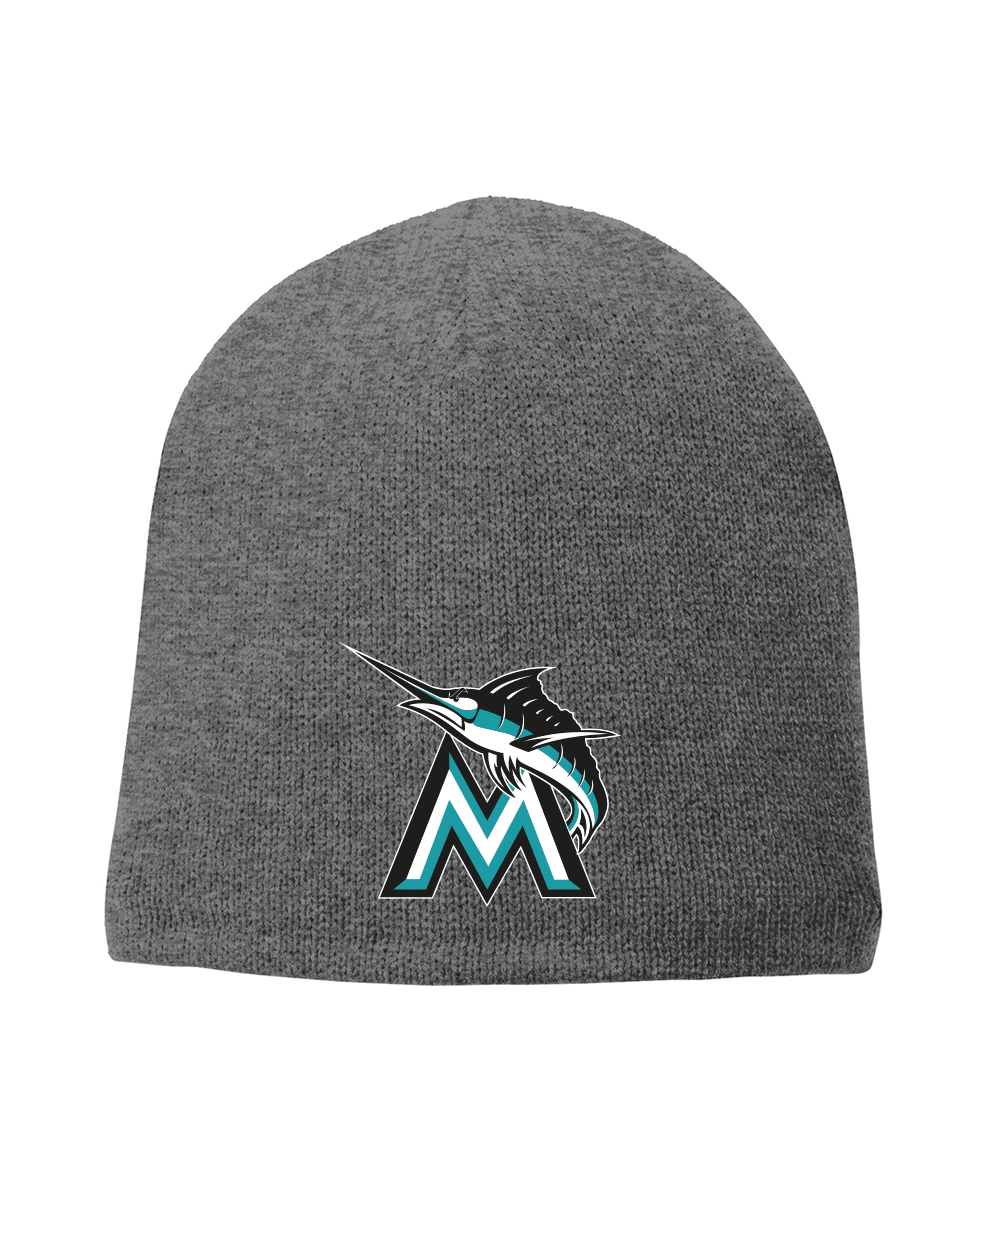 Fleece Lined Beanie - Embroidered